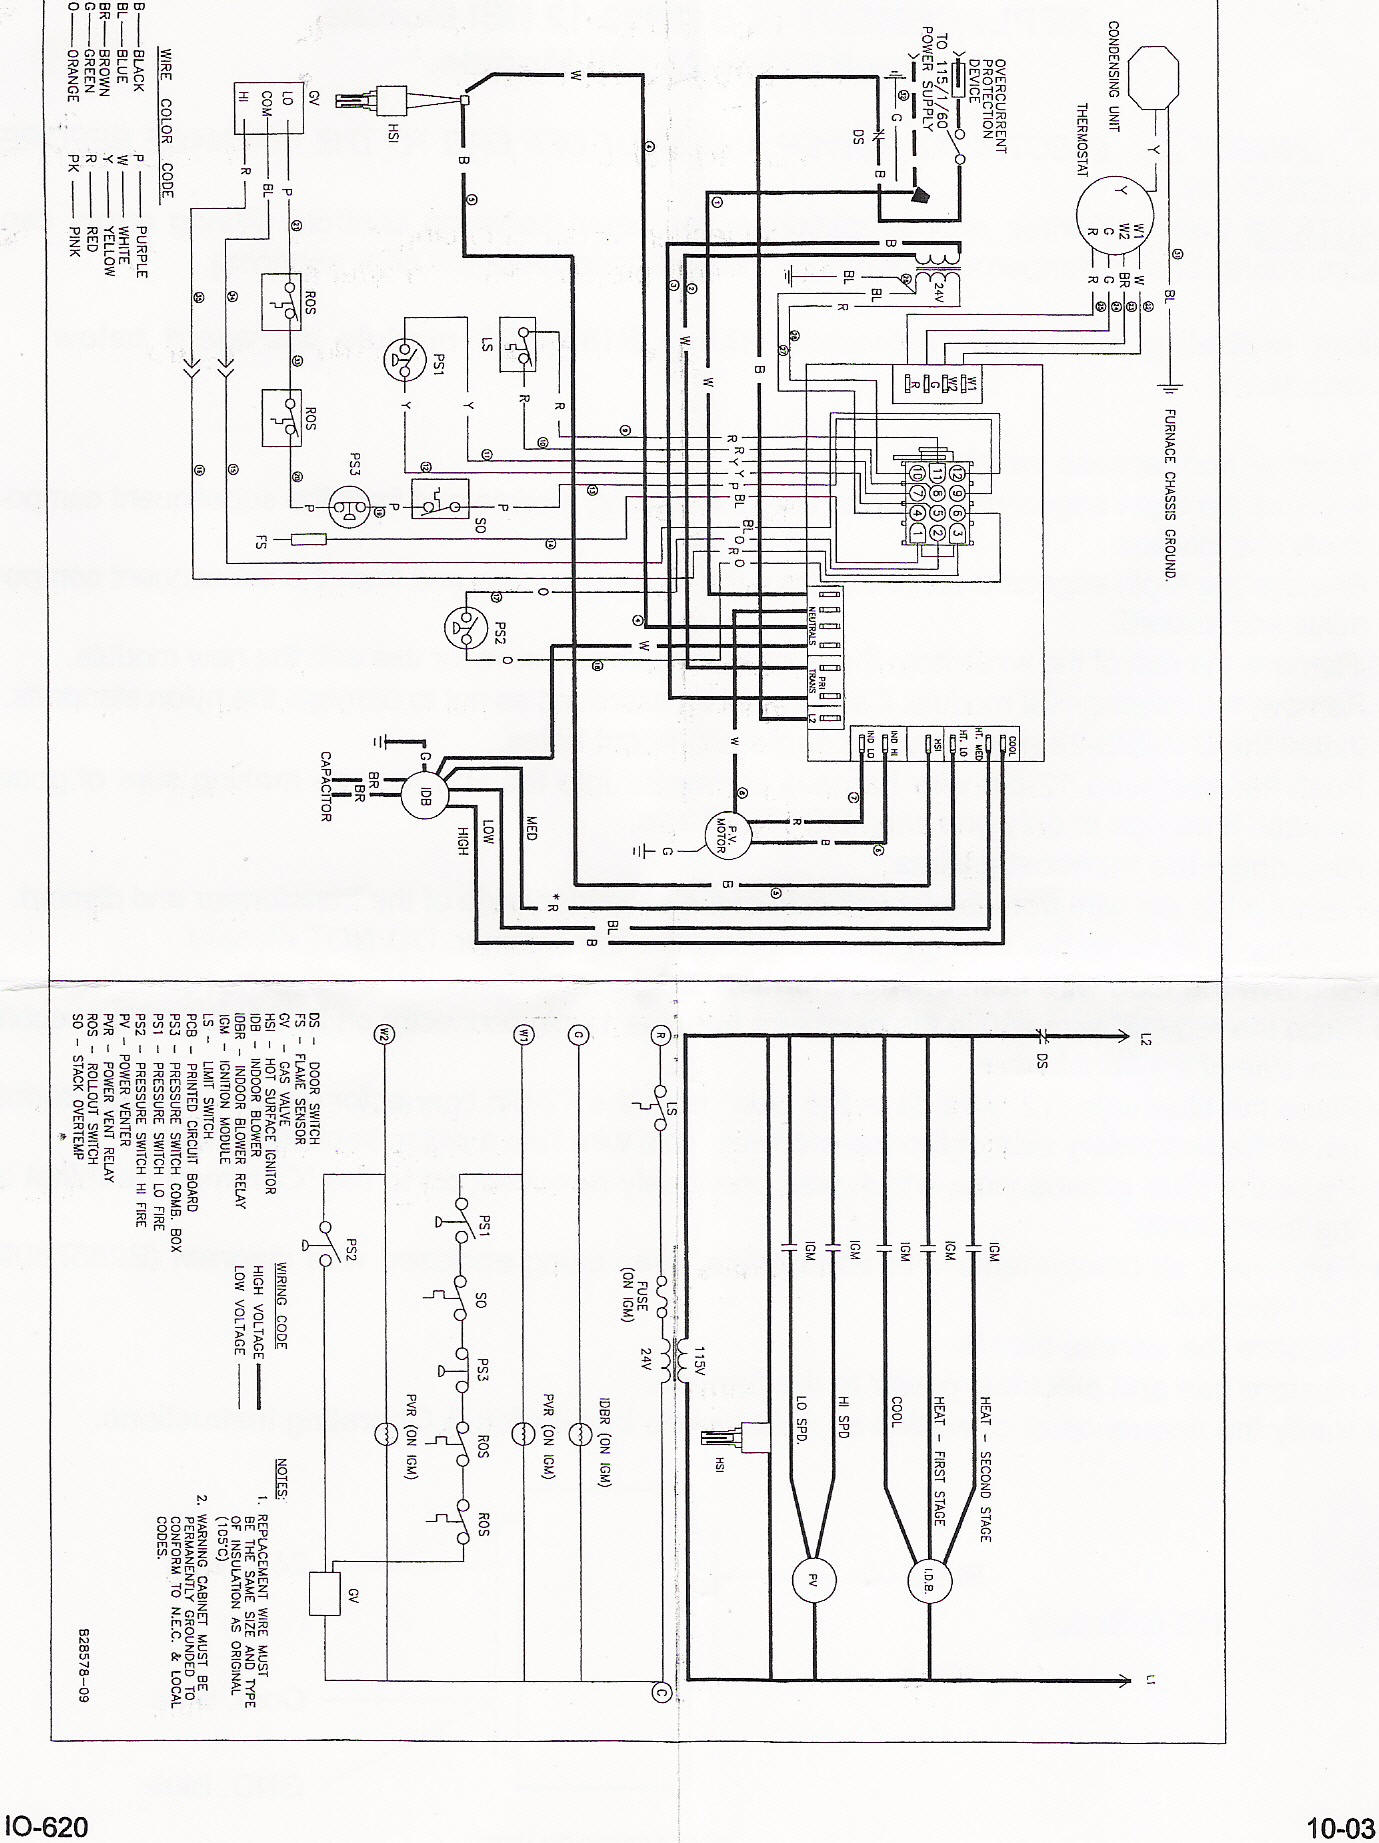 goodma2 instr trane furnace wiring diagram thermal protector wiring diagram  at mifinder.co